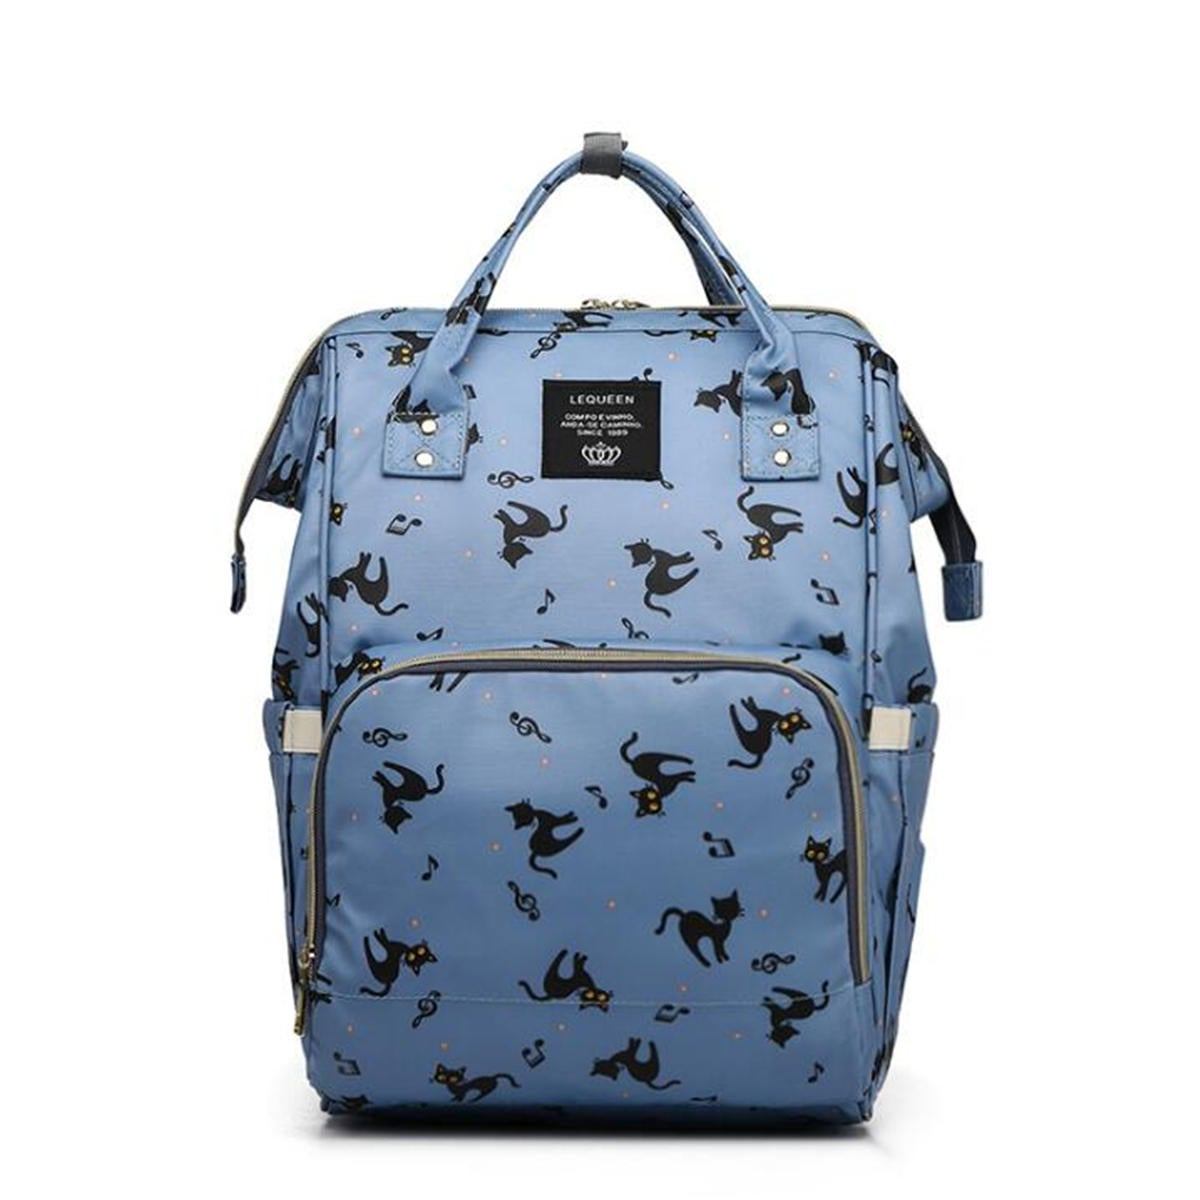 Mummy Backpack Multi-function Large-capacity Bag Expectant Travel Outdoor Maternal and Child Package BLUE COLOR